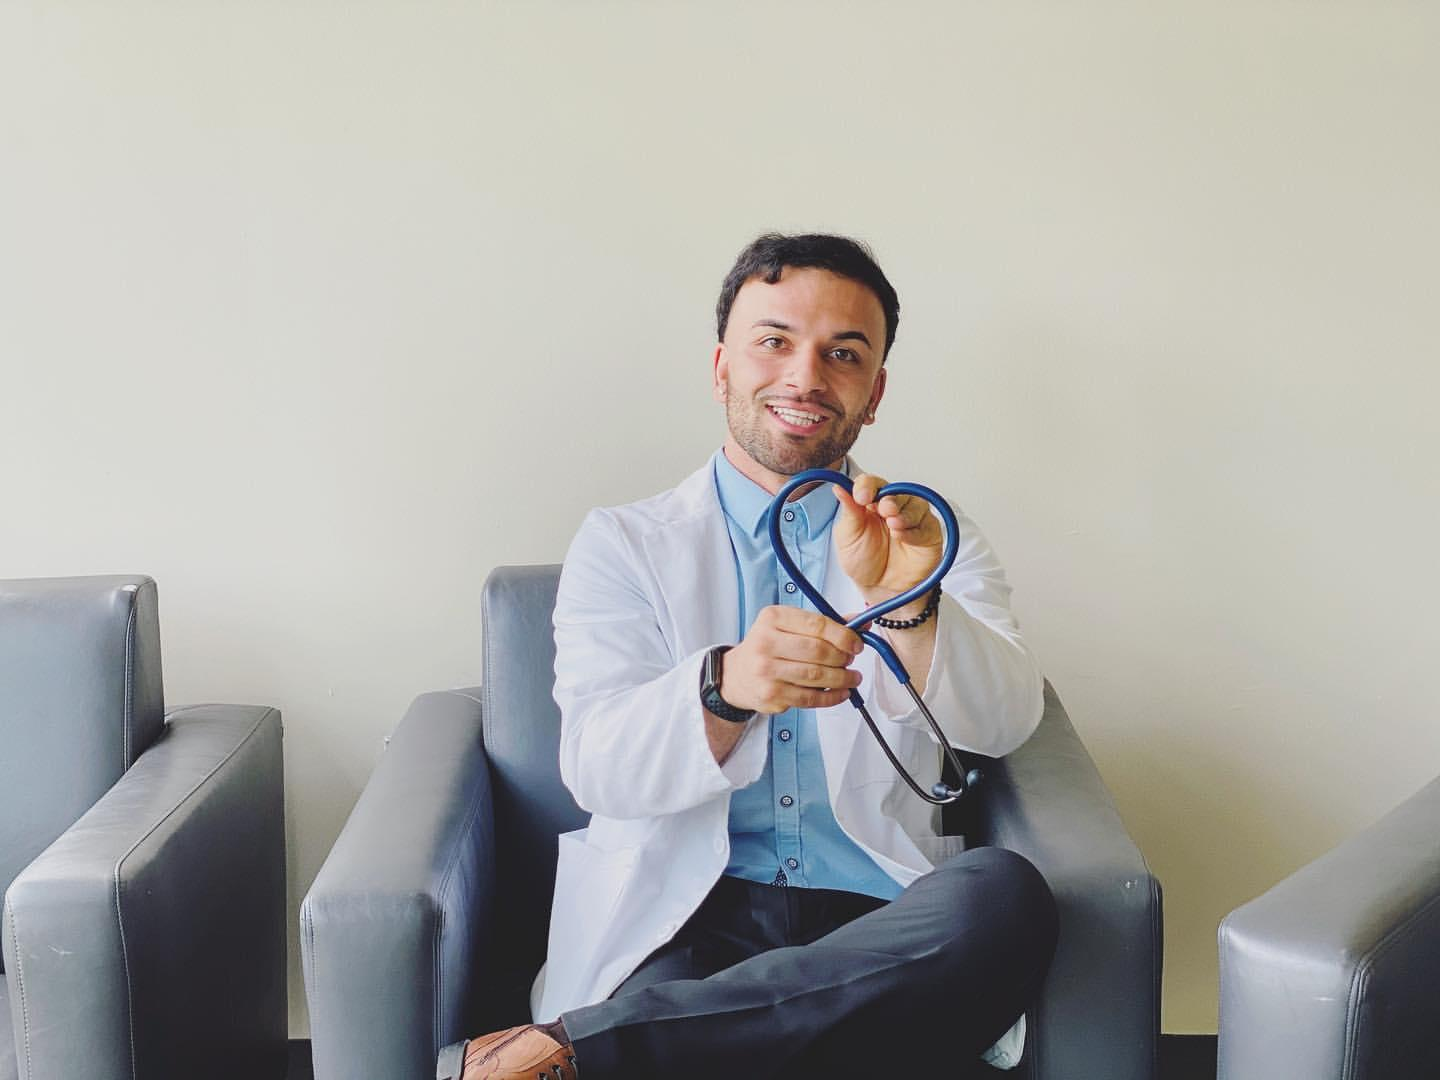 THRIVING ENTREPRENEUR SHARES HOW HE USES SOCIAL MEDIA TO ACCELERATE HIS CAREER GROWTH WHILE BEING A STUDENT STUDYING MEDICINE